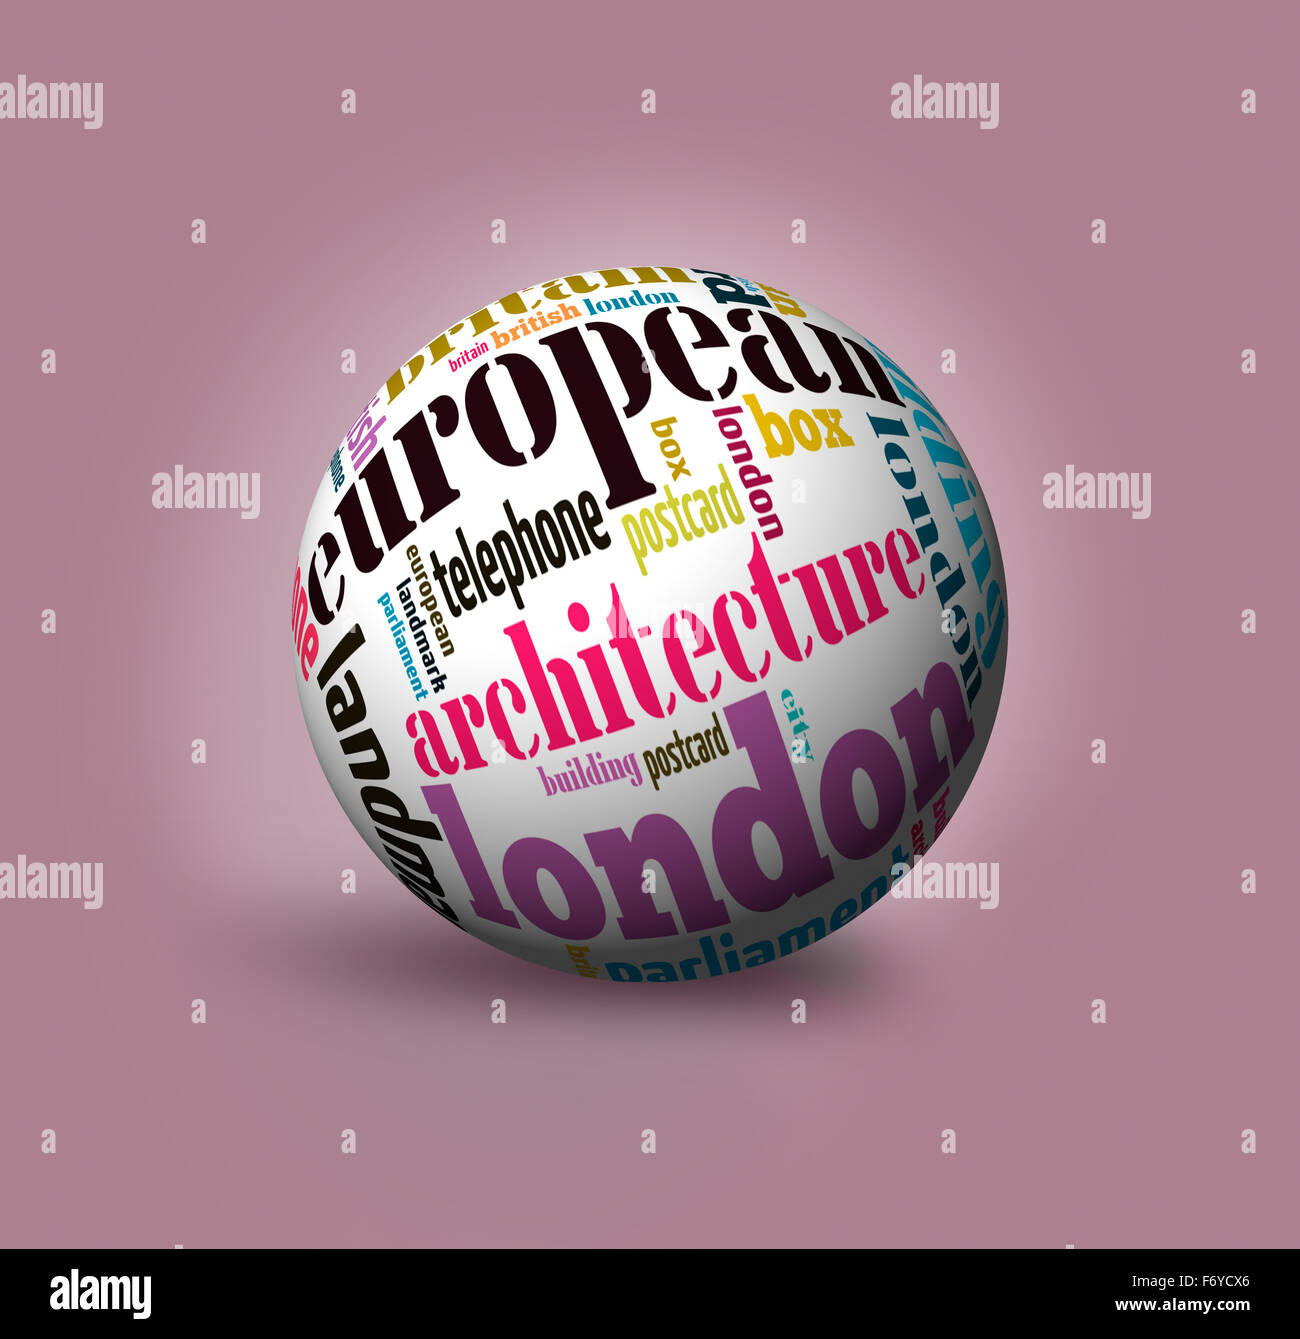 word cloud in a 3d globe on the symbols of London - Stock Image